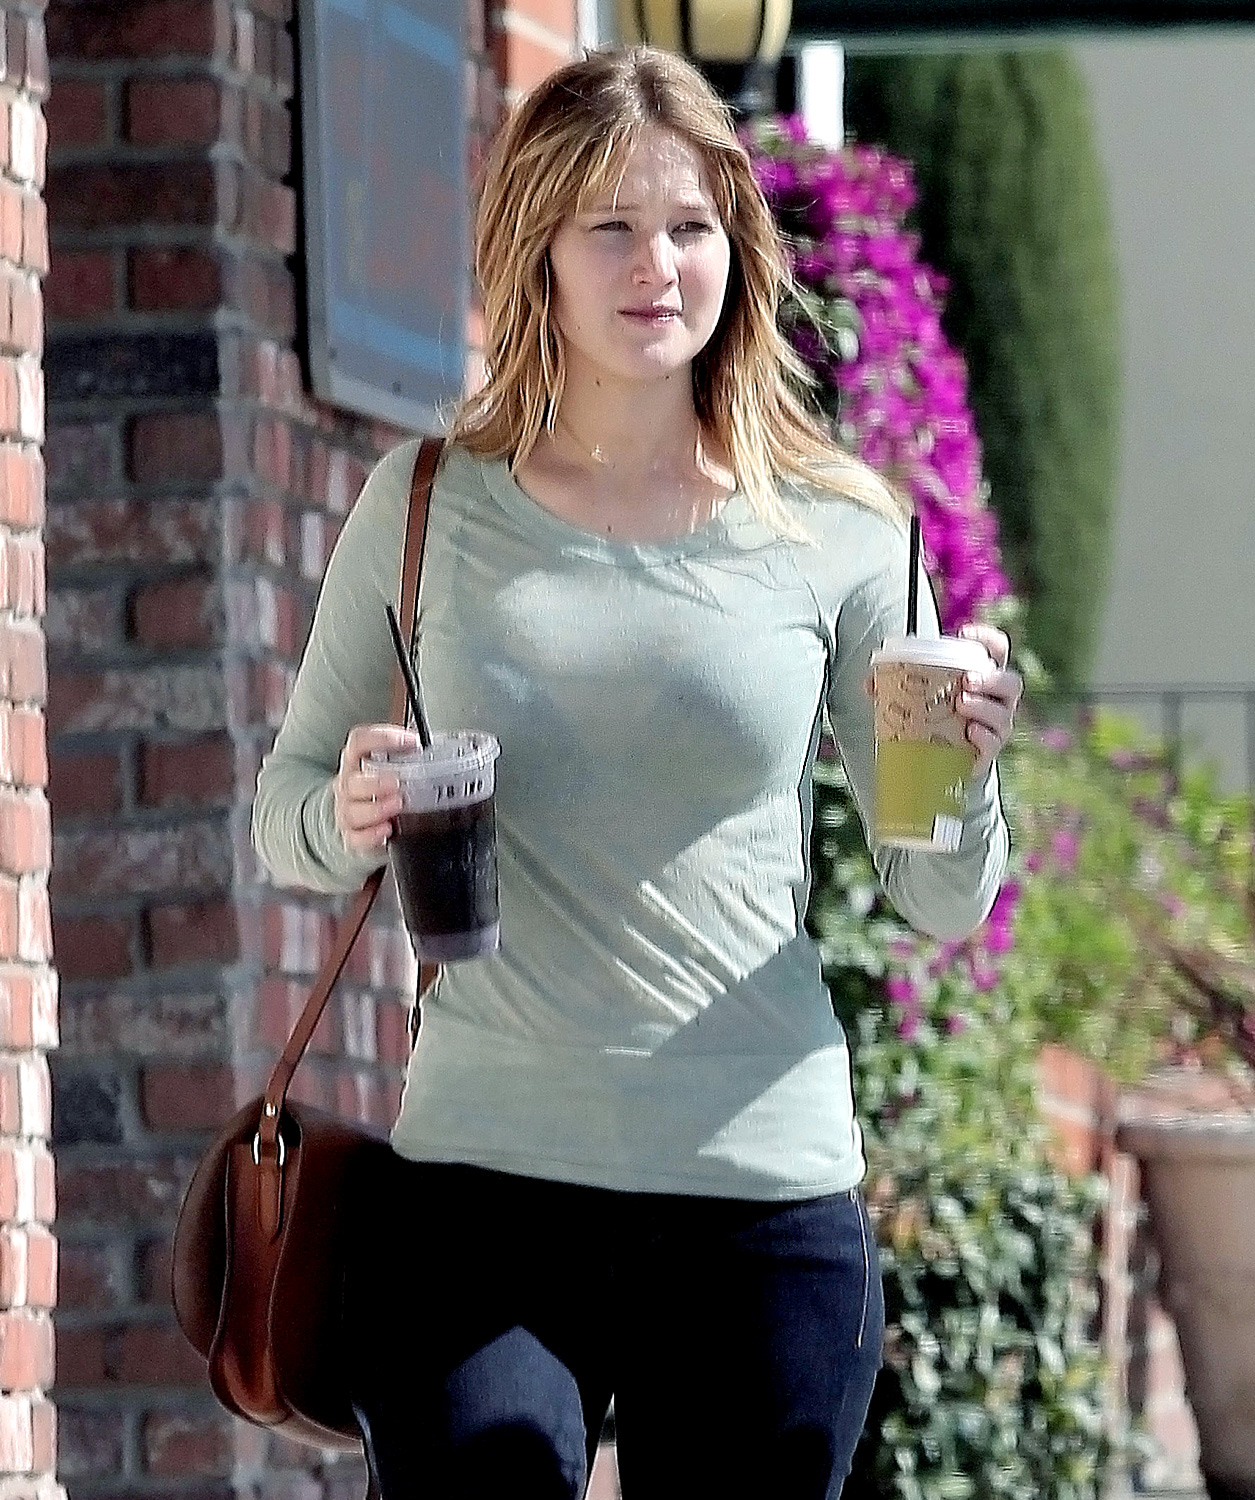 The nutrition in these morning drinks gives anyone more energy to work. - Jennifer Lawrence No Makeup - All Ravishing Pics